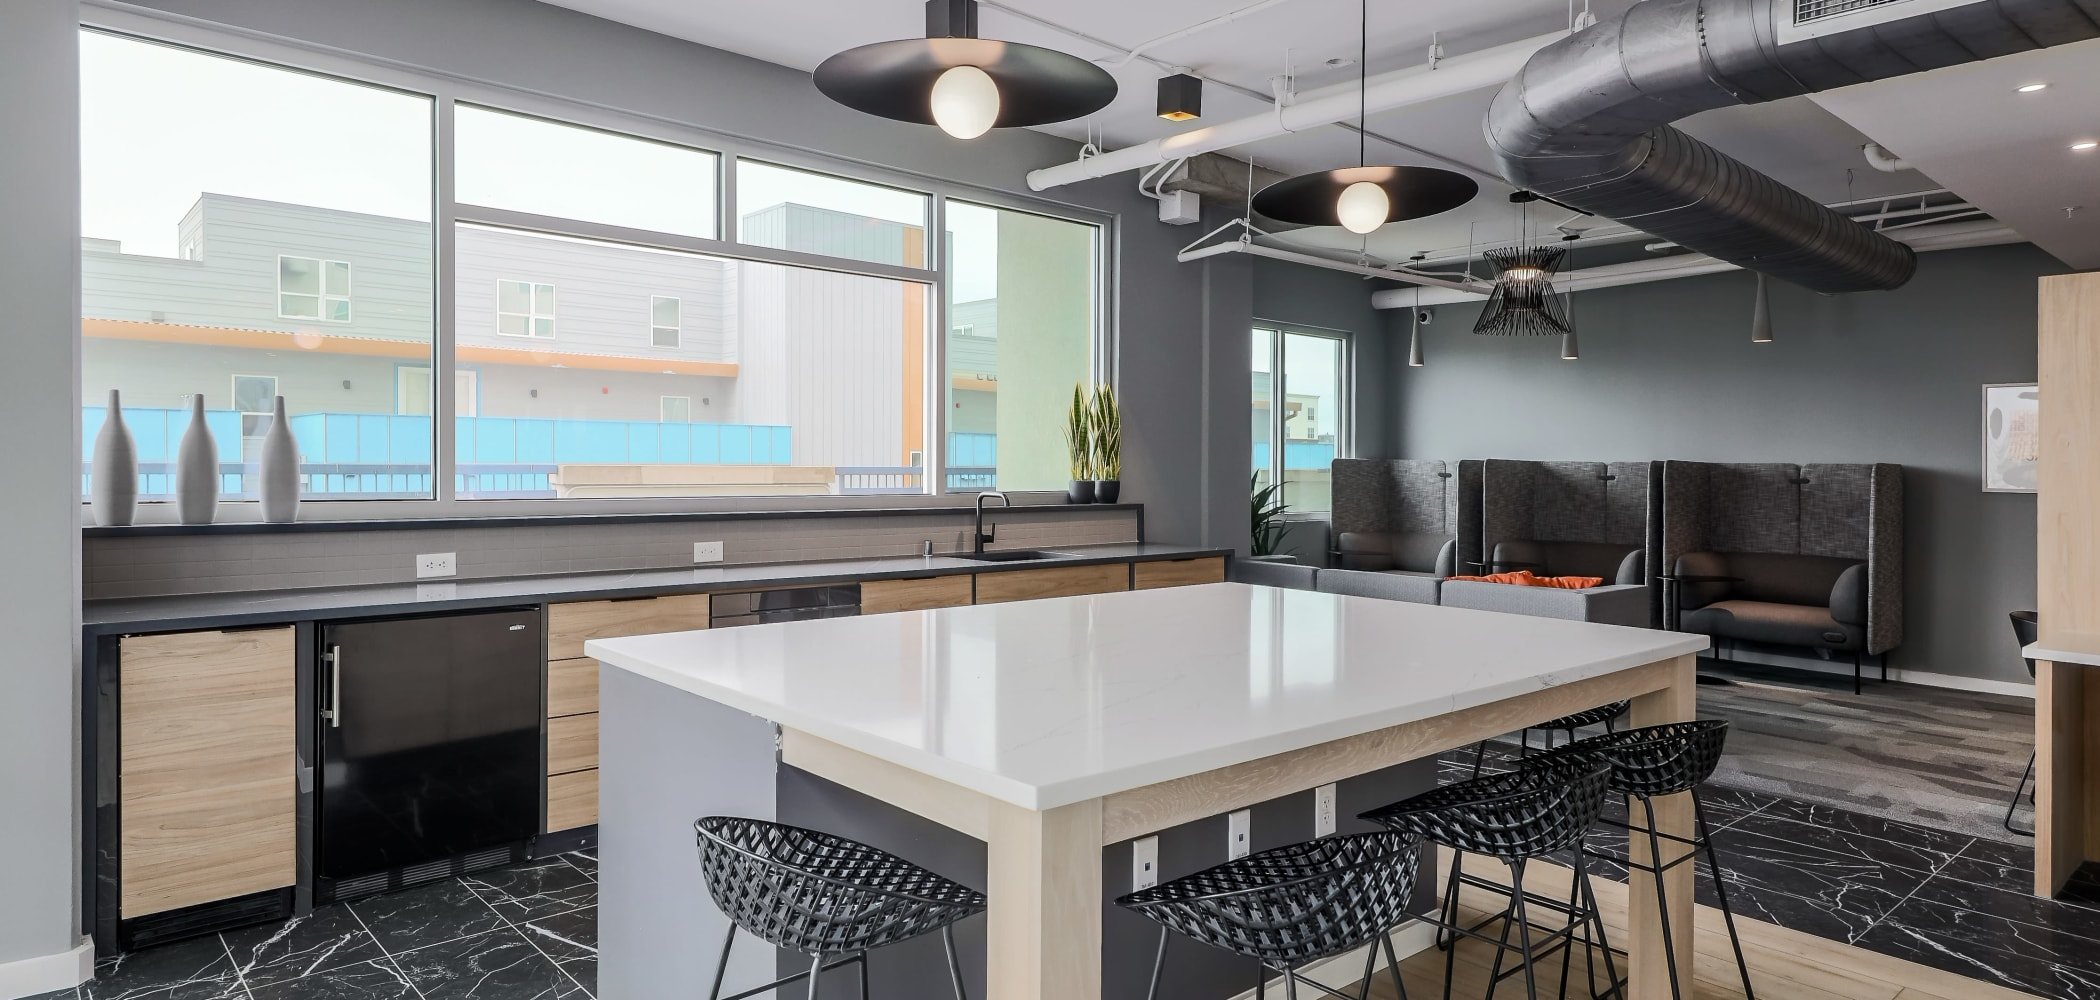 Study area with a kitchenette at 21 Rio in Austin, Texas